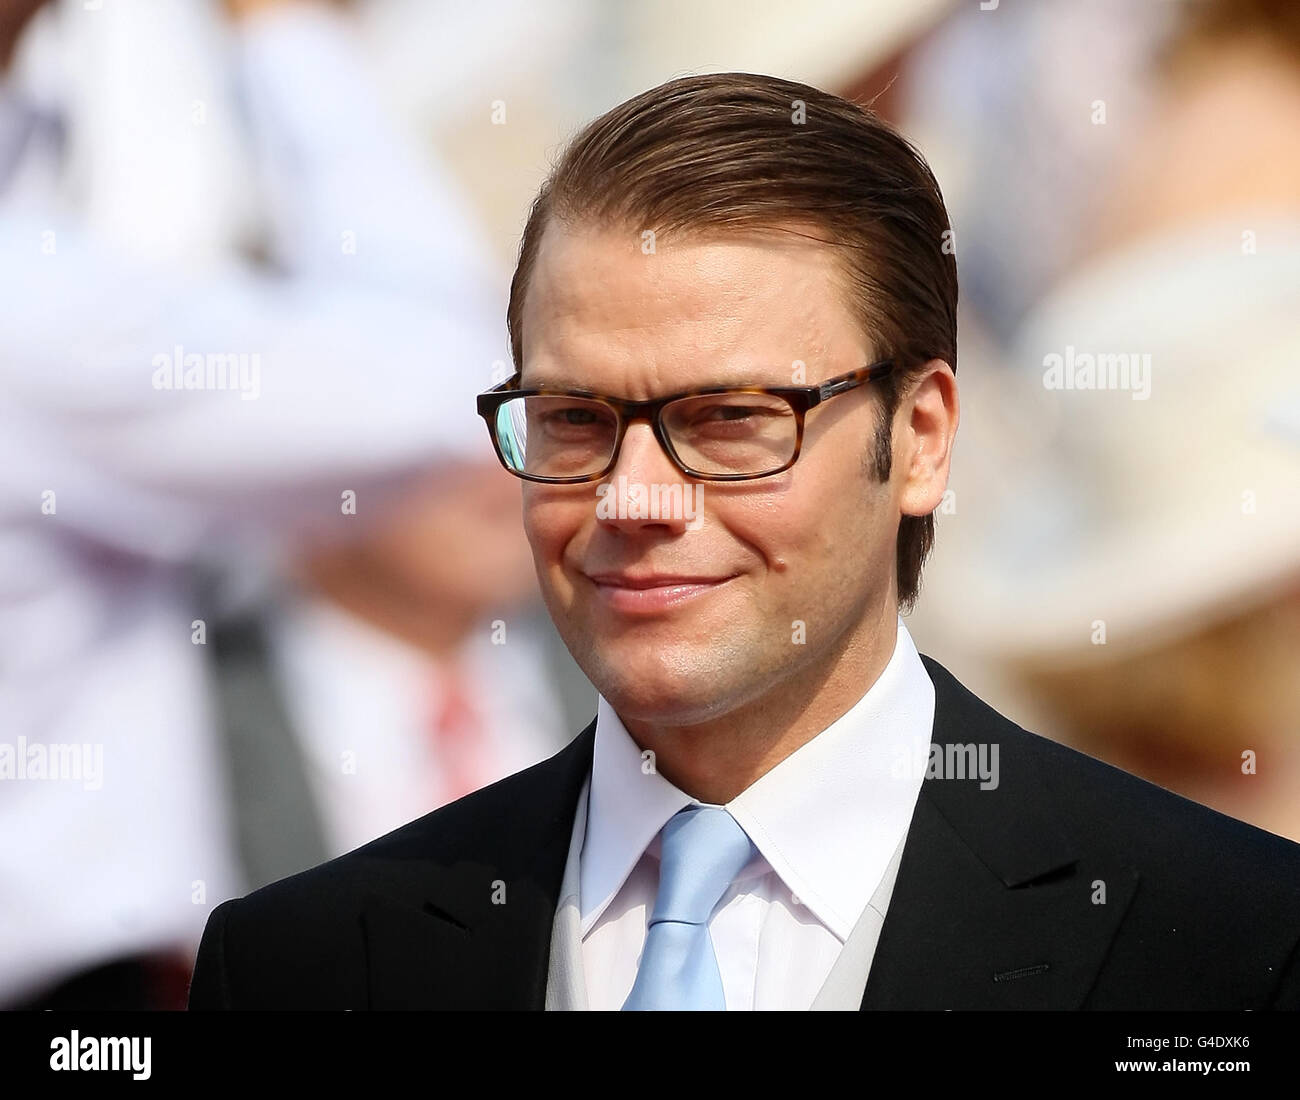 Prince Daniel, Duke of Vastergotland arrives at the Place du Palais, Monte Carlo, for the religious ceremony of the wedding of Charlene Wittstock to Prince Albert II of Monaco. Stock Photo